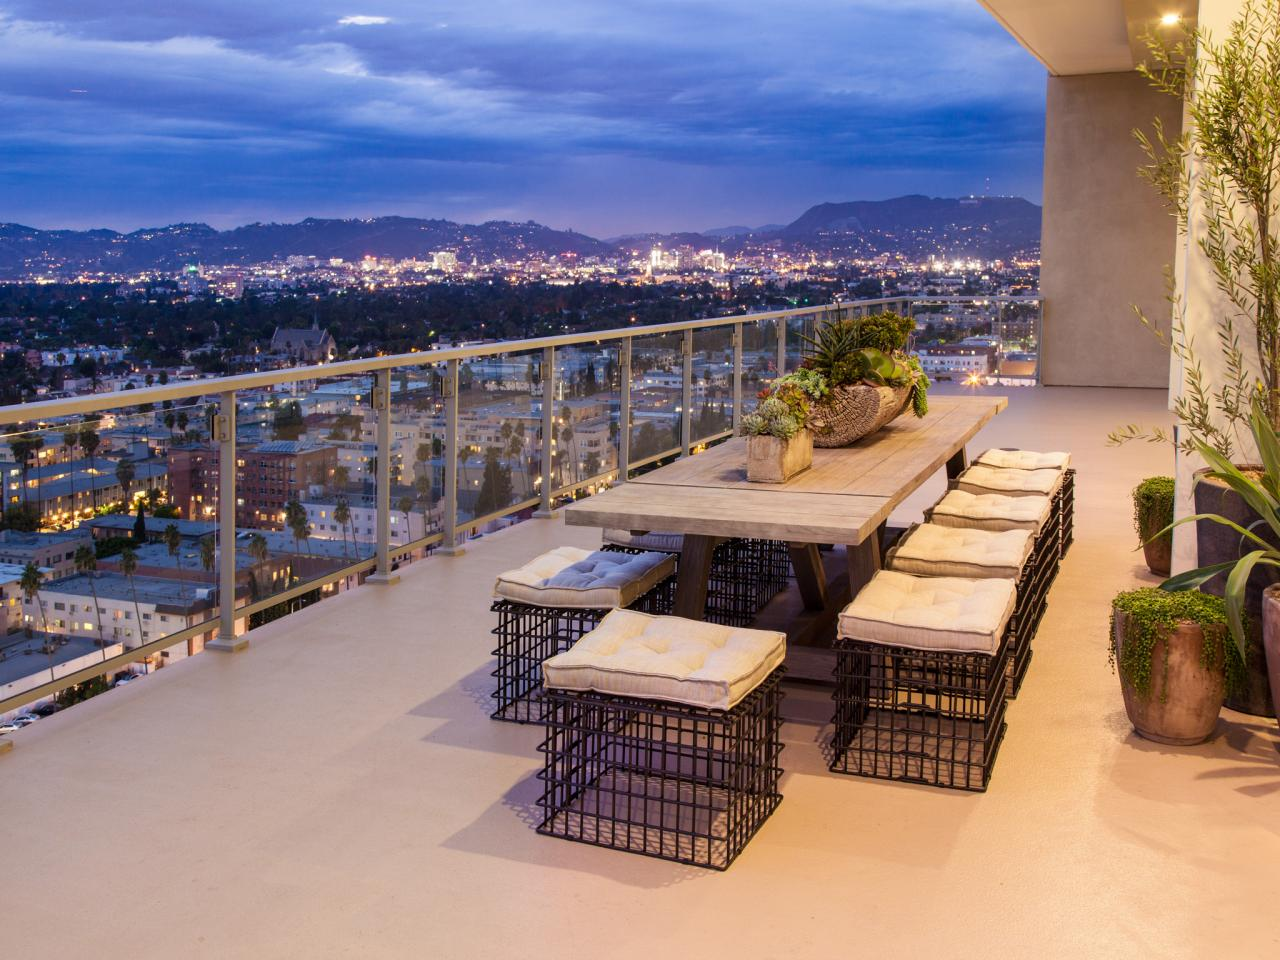 Modern Balconies Interior Design Ideas. Dining furniture set at the open air